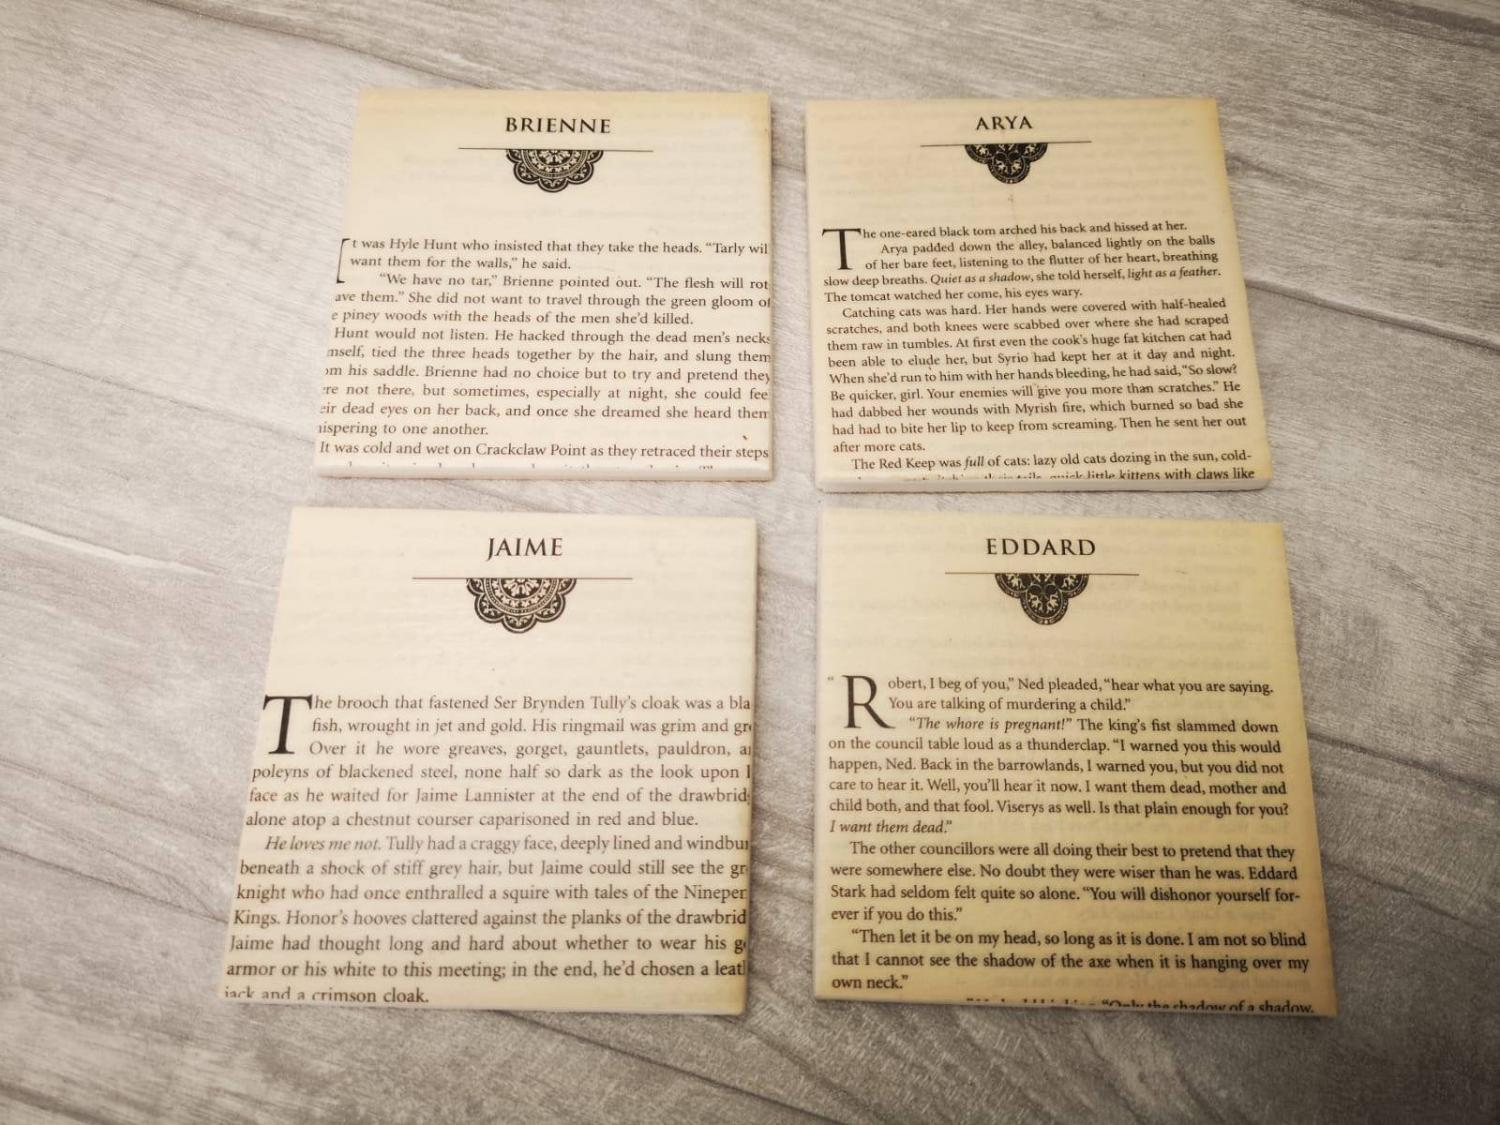 Game Of Thrones Novel Coasters Let You Read a Page Every Time You Put Your Cup Down